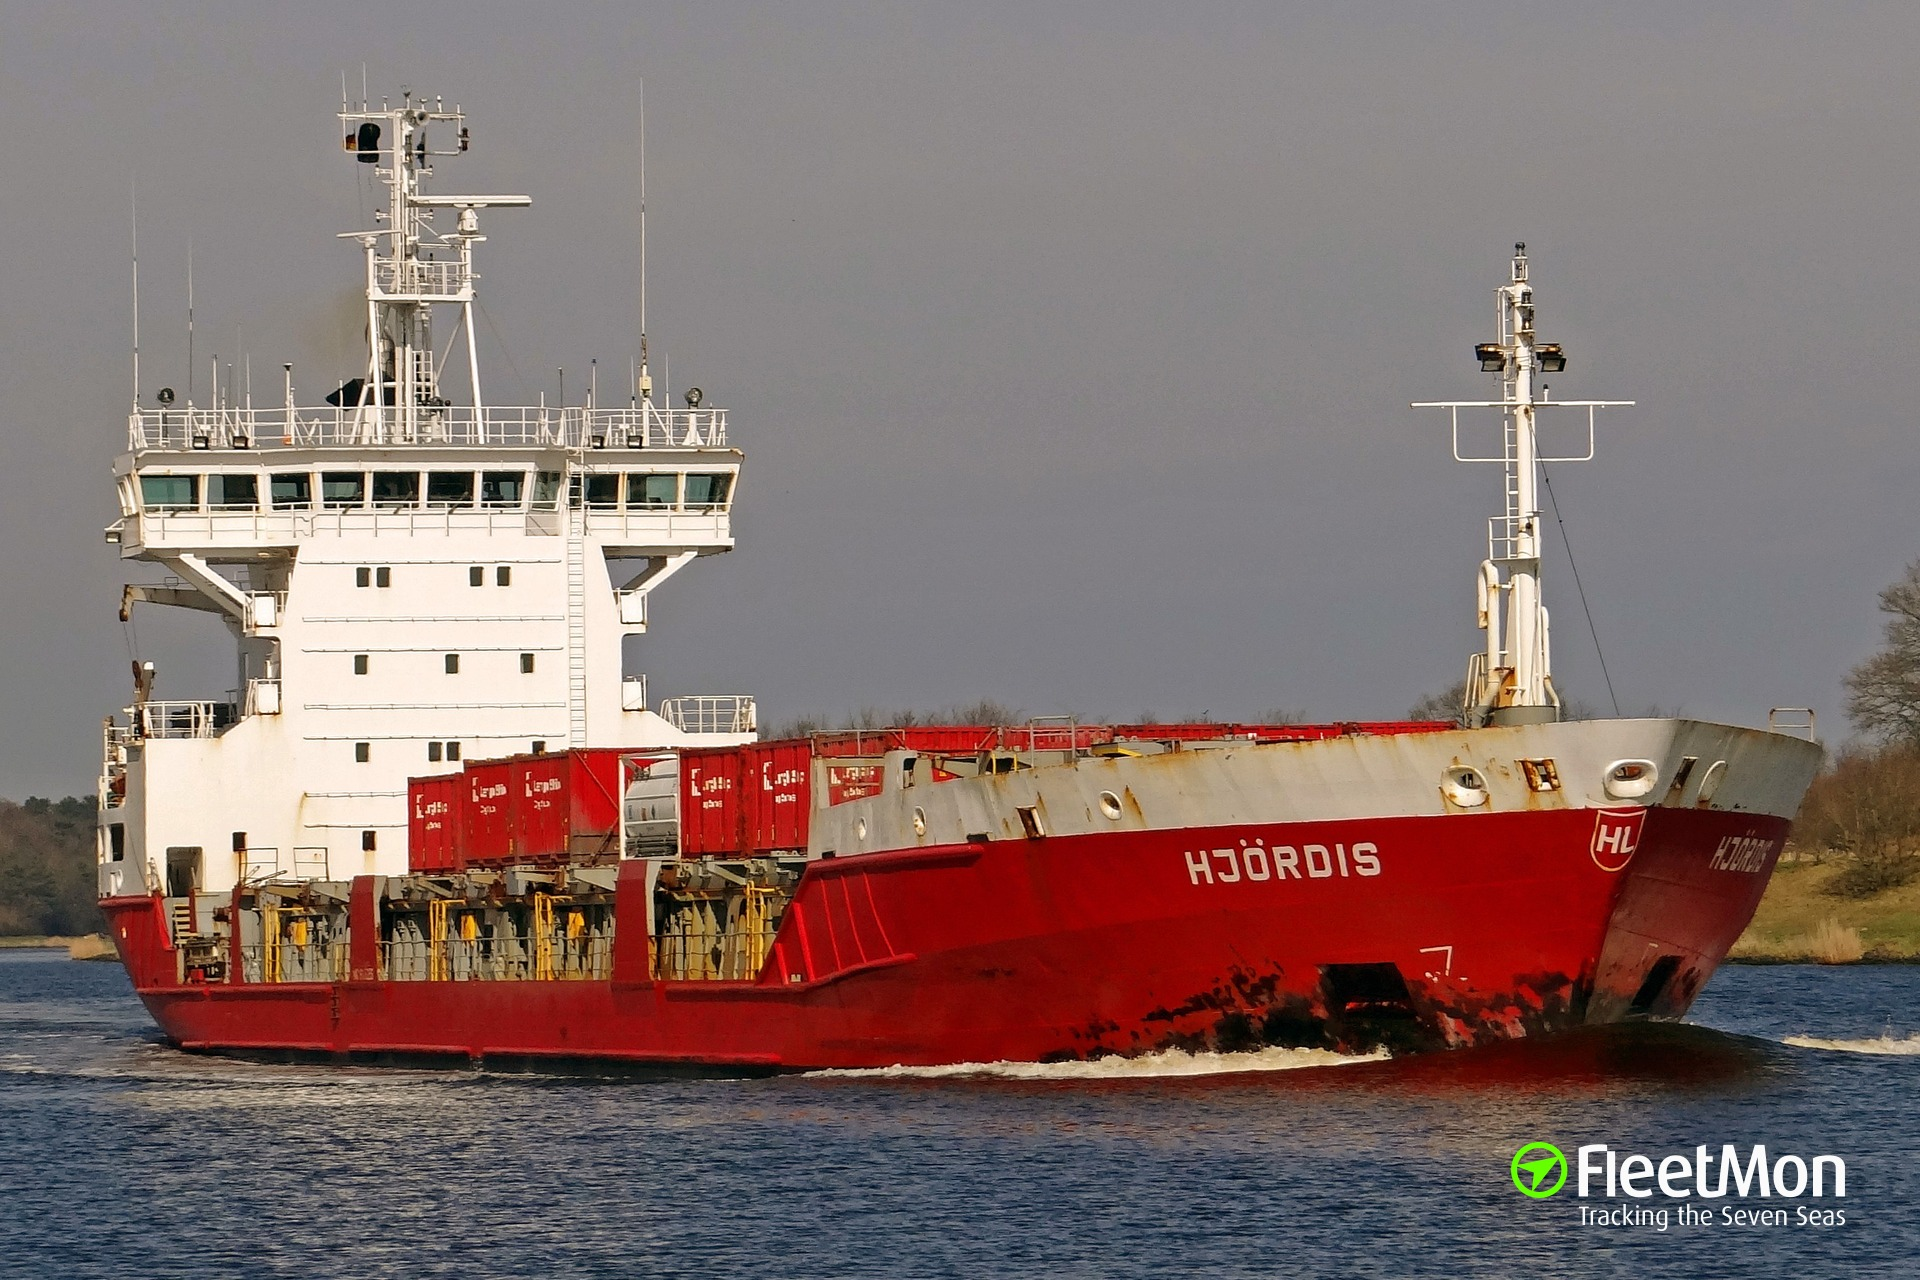 General cargo vessel Hjordis disaled in Kiel Canal